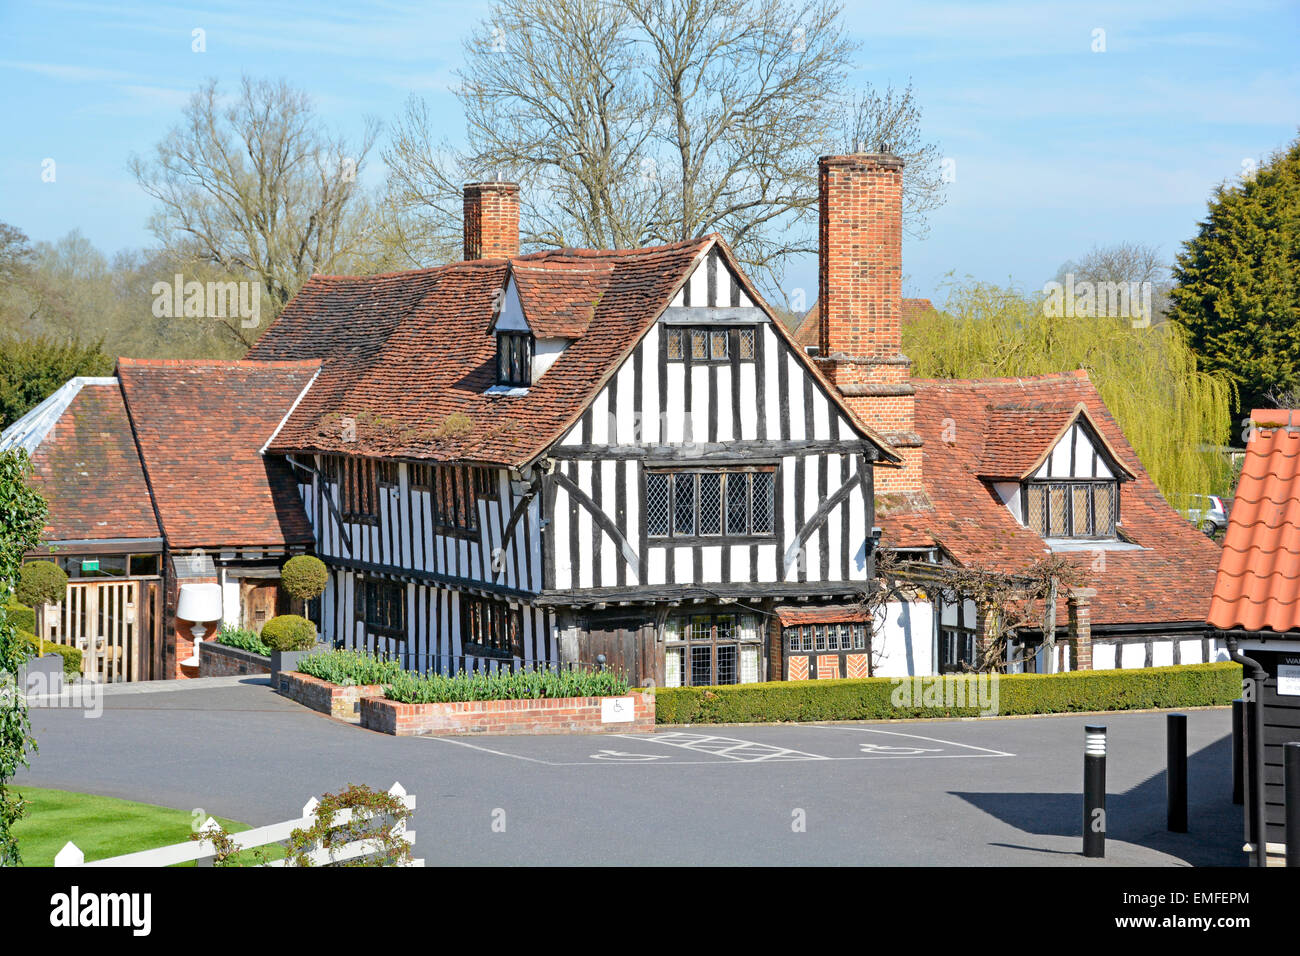 The Le Talbooth Riverside Rural Restaurant And Wedding Venue At Stock Photo Royalty Free Image